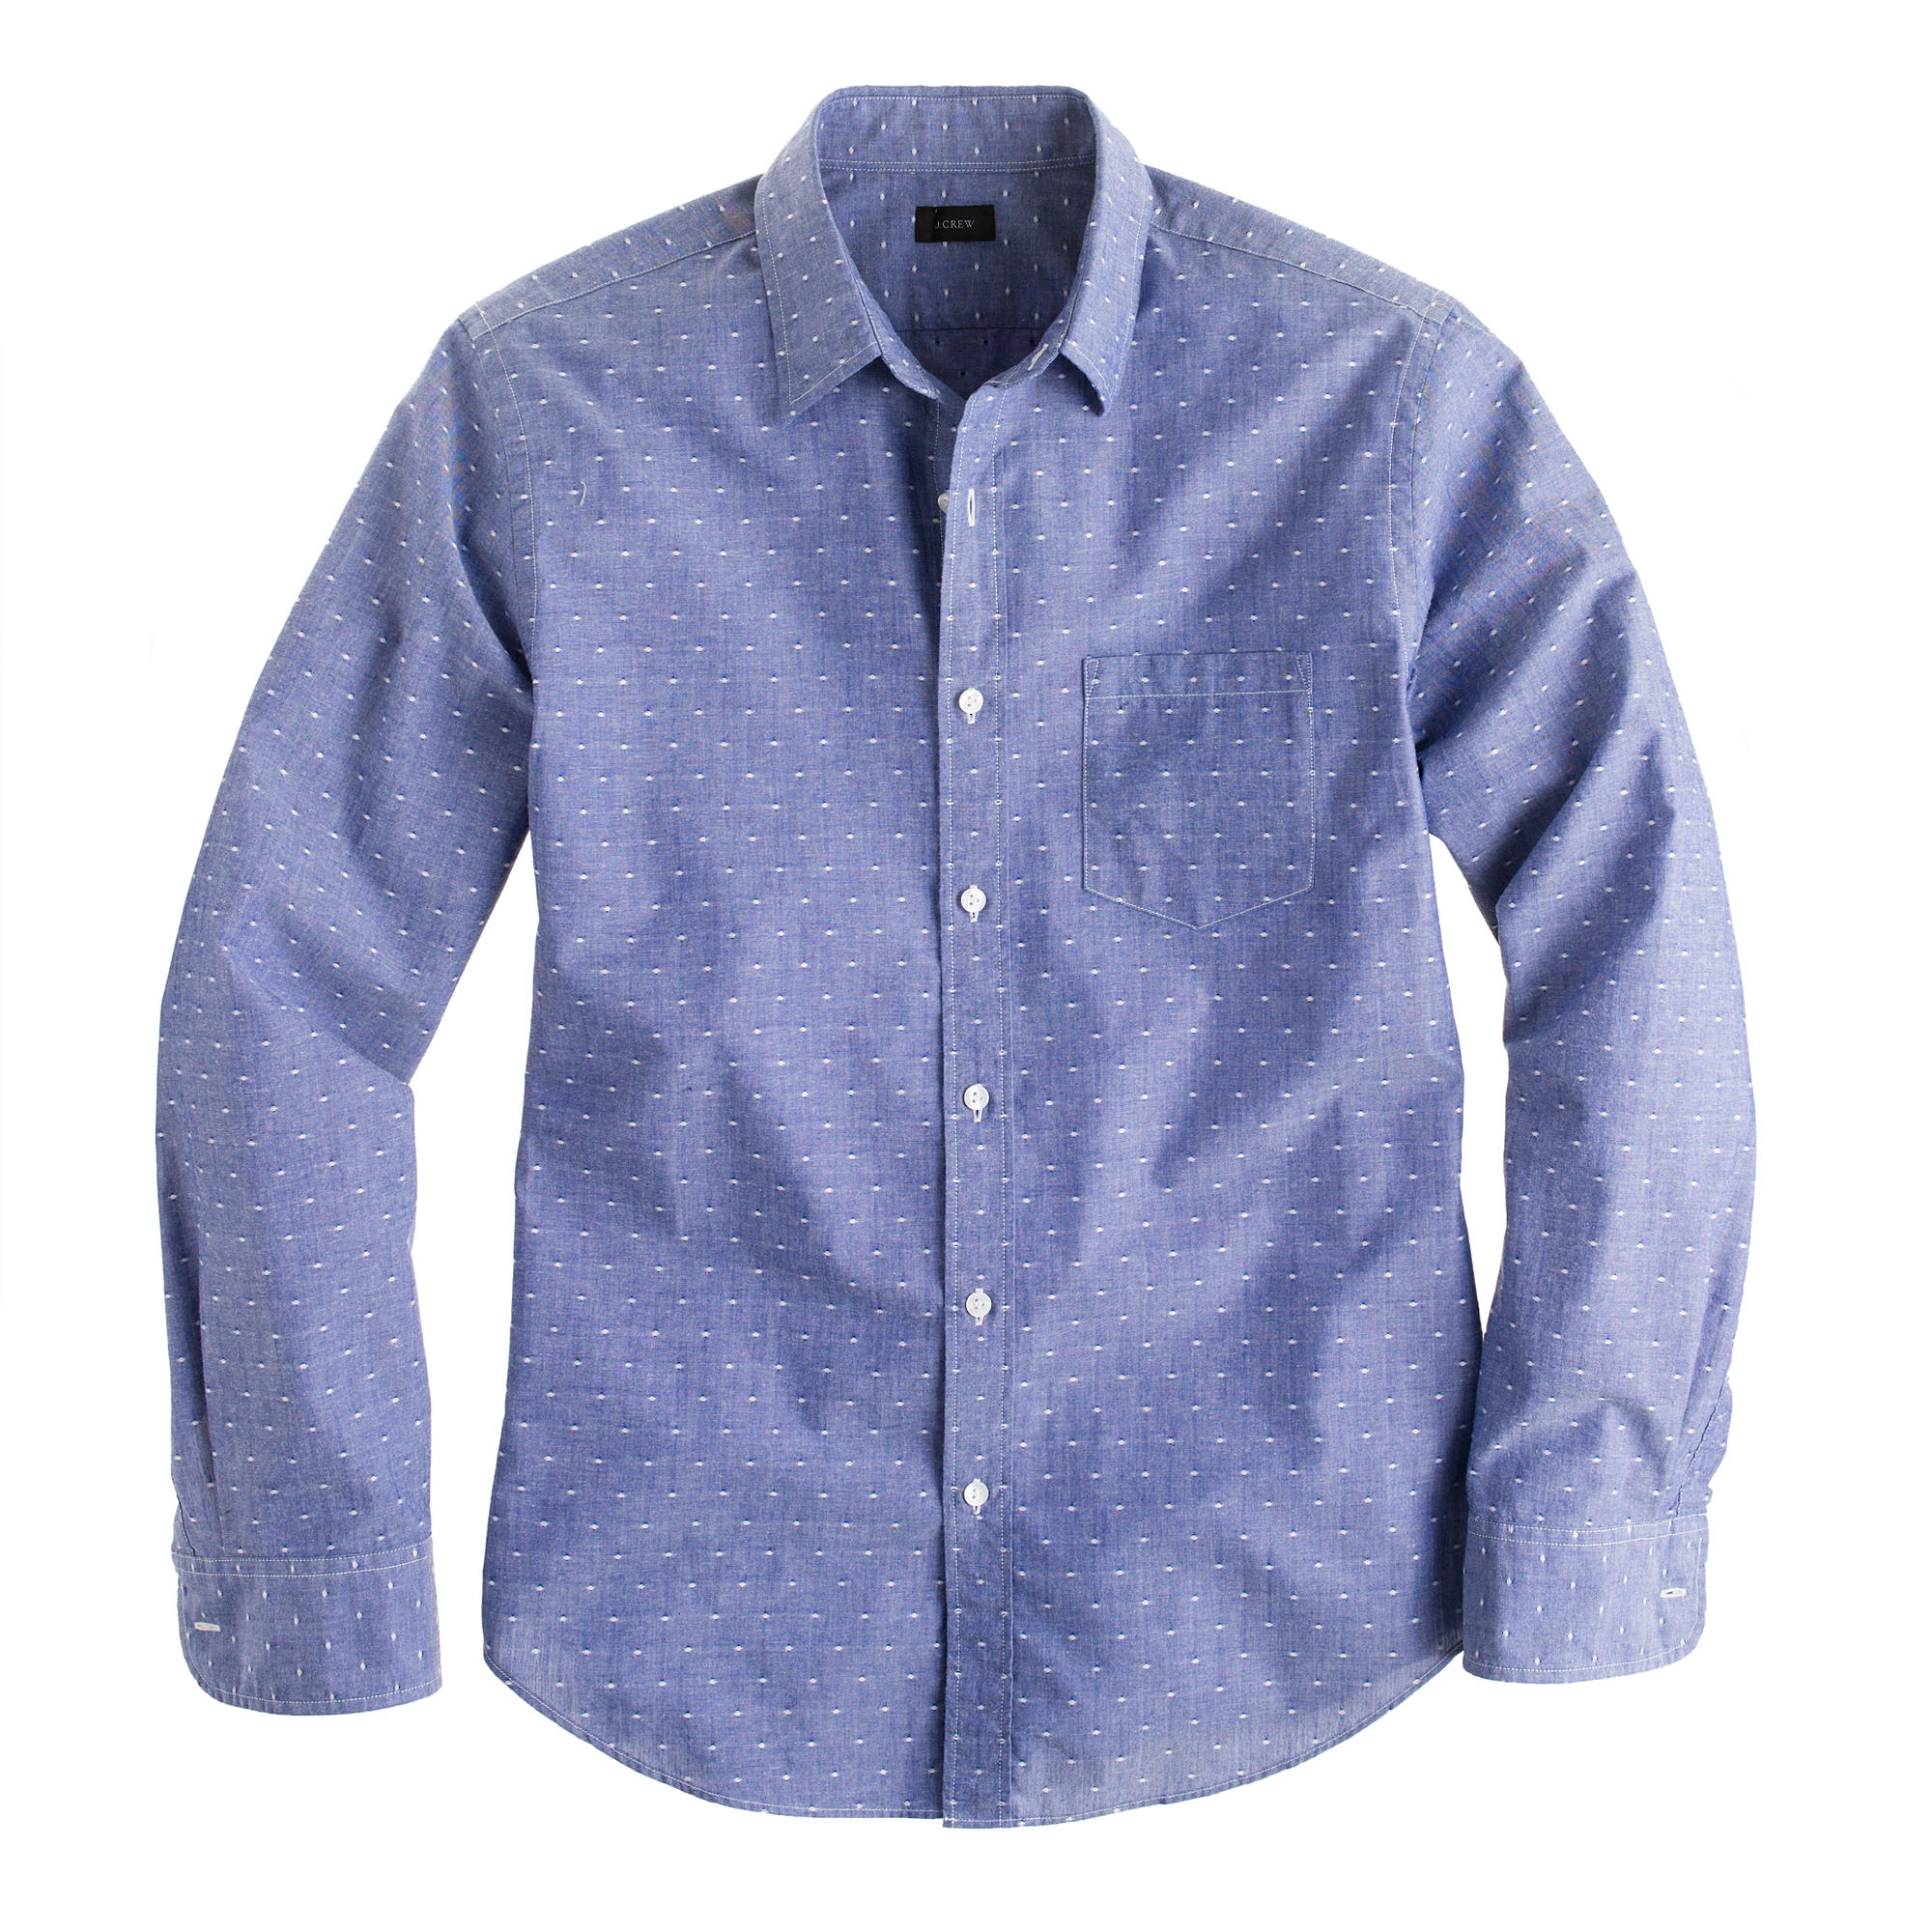 Find great deals on eBay for polka dot chambray shirt. Shop with confidence.